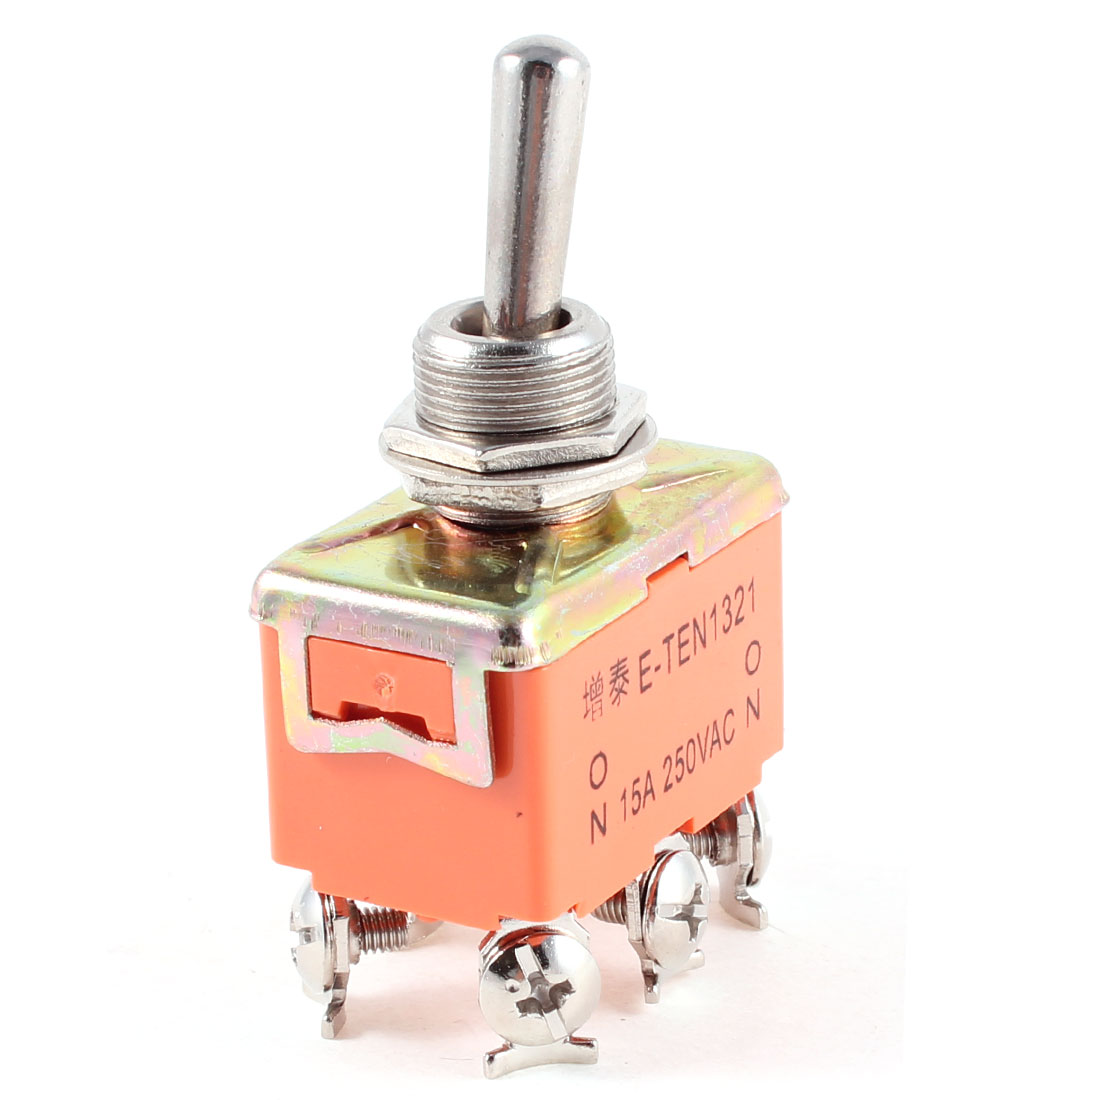 DPDT ON/ON 2 Position 6 Screw Terminals Toggle Switch AC 250V 15A